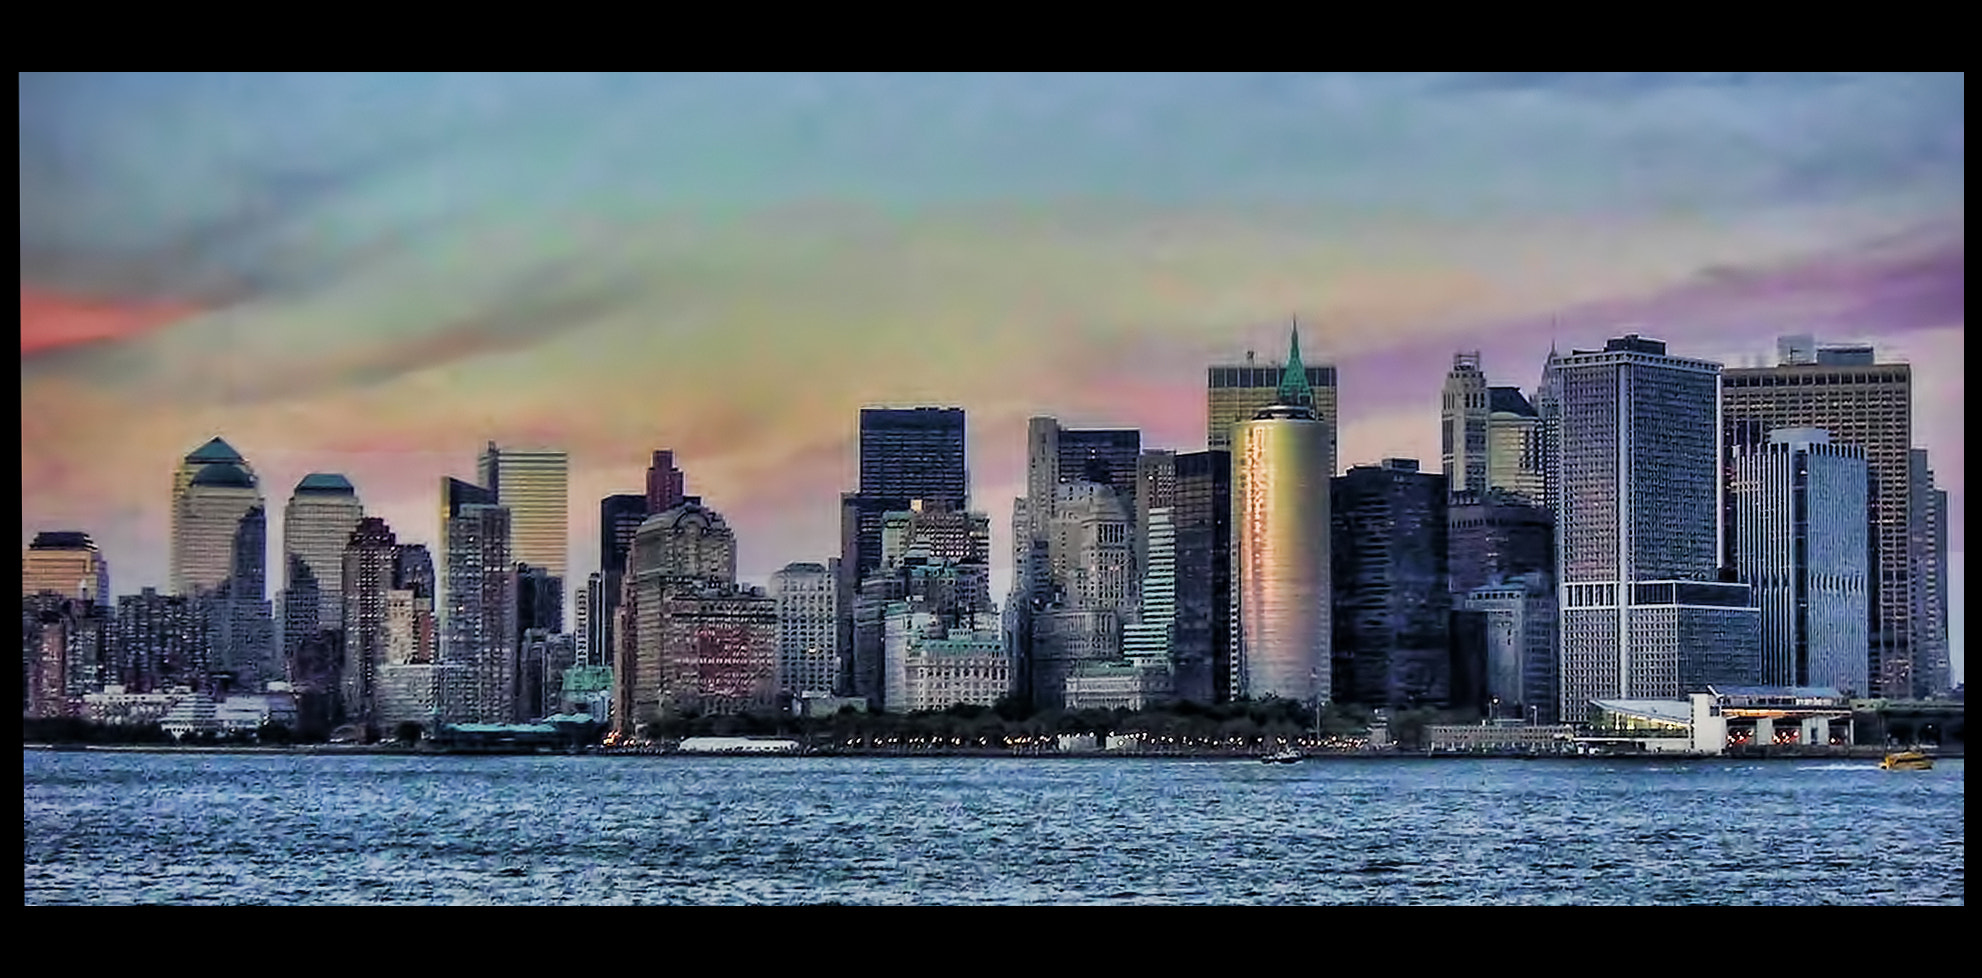 Photograph Manhattan Skyline by Todd Leckie on 500px